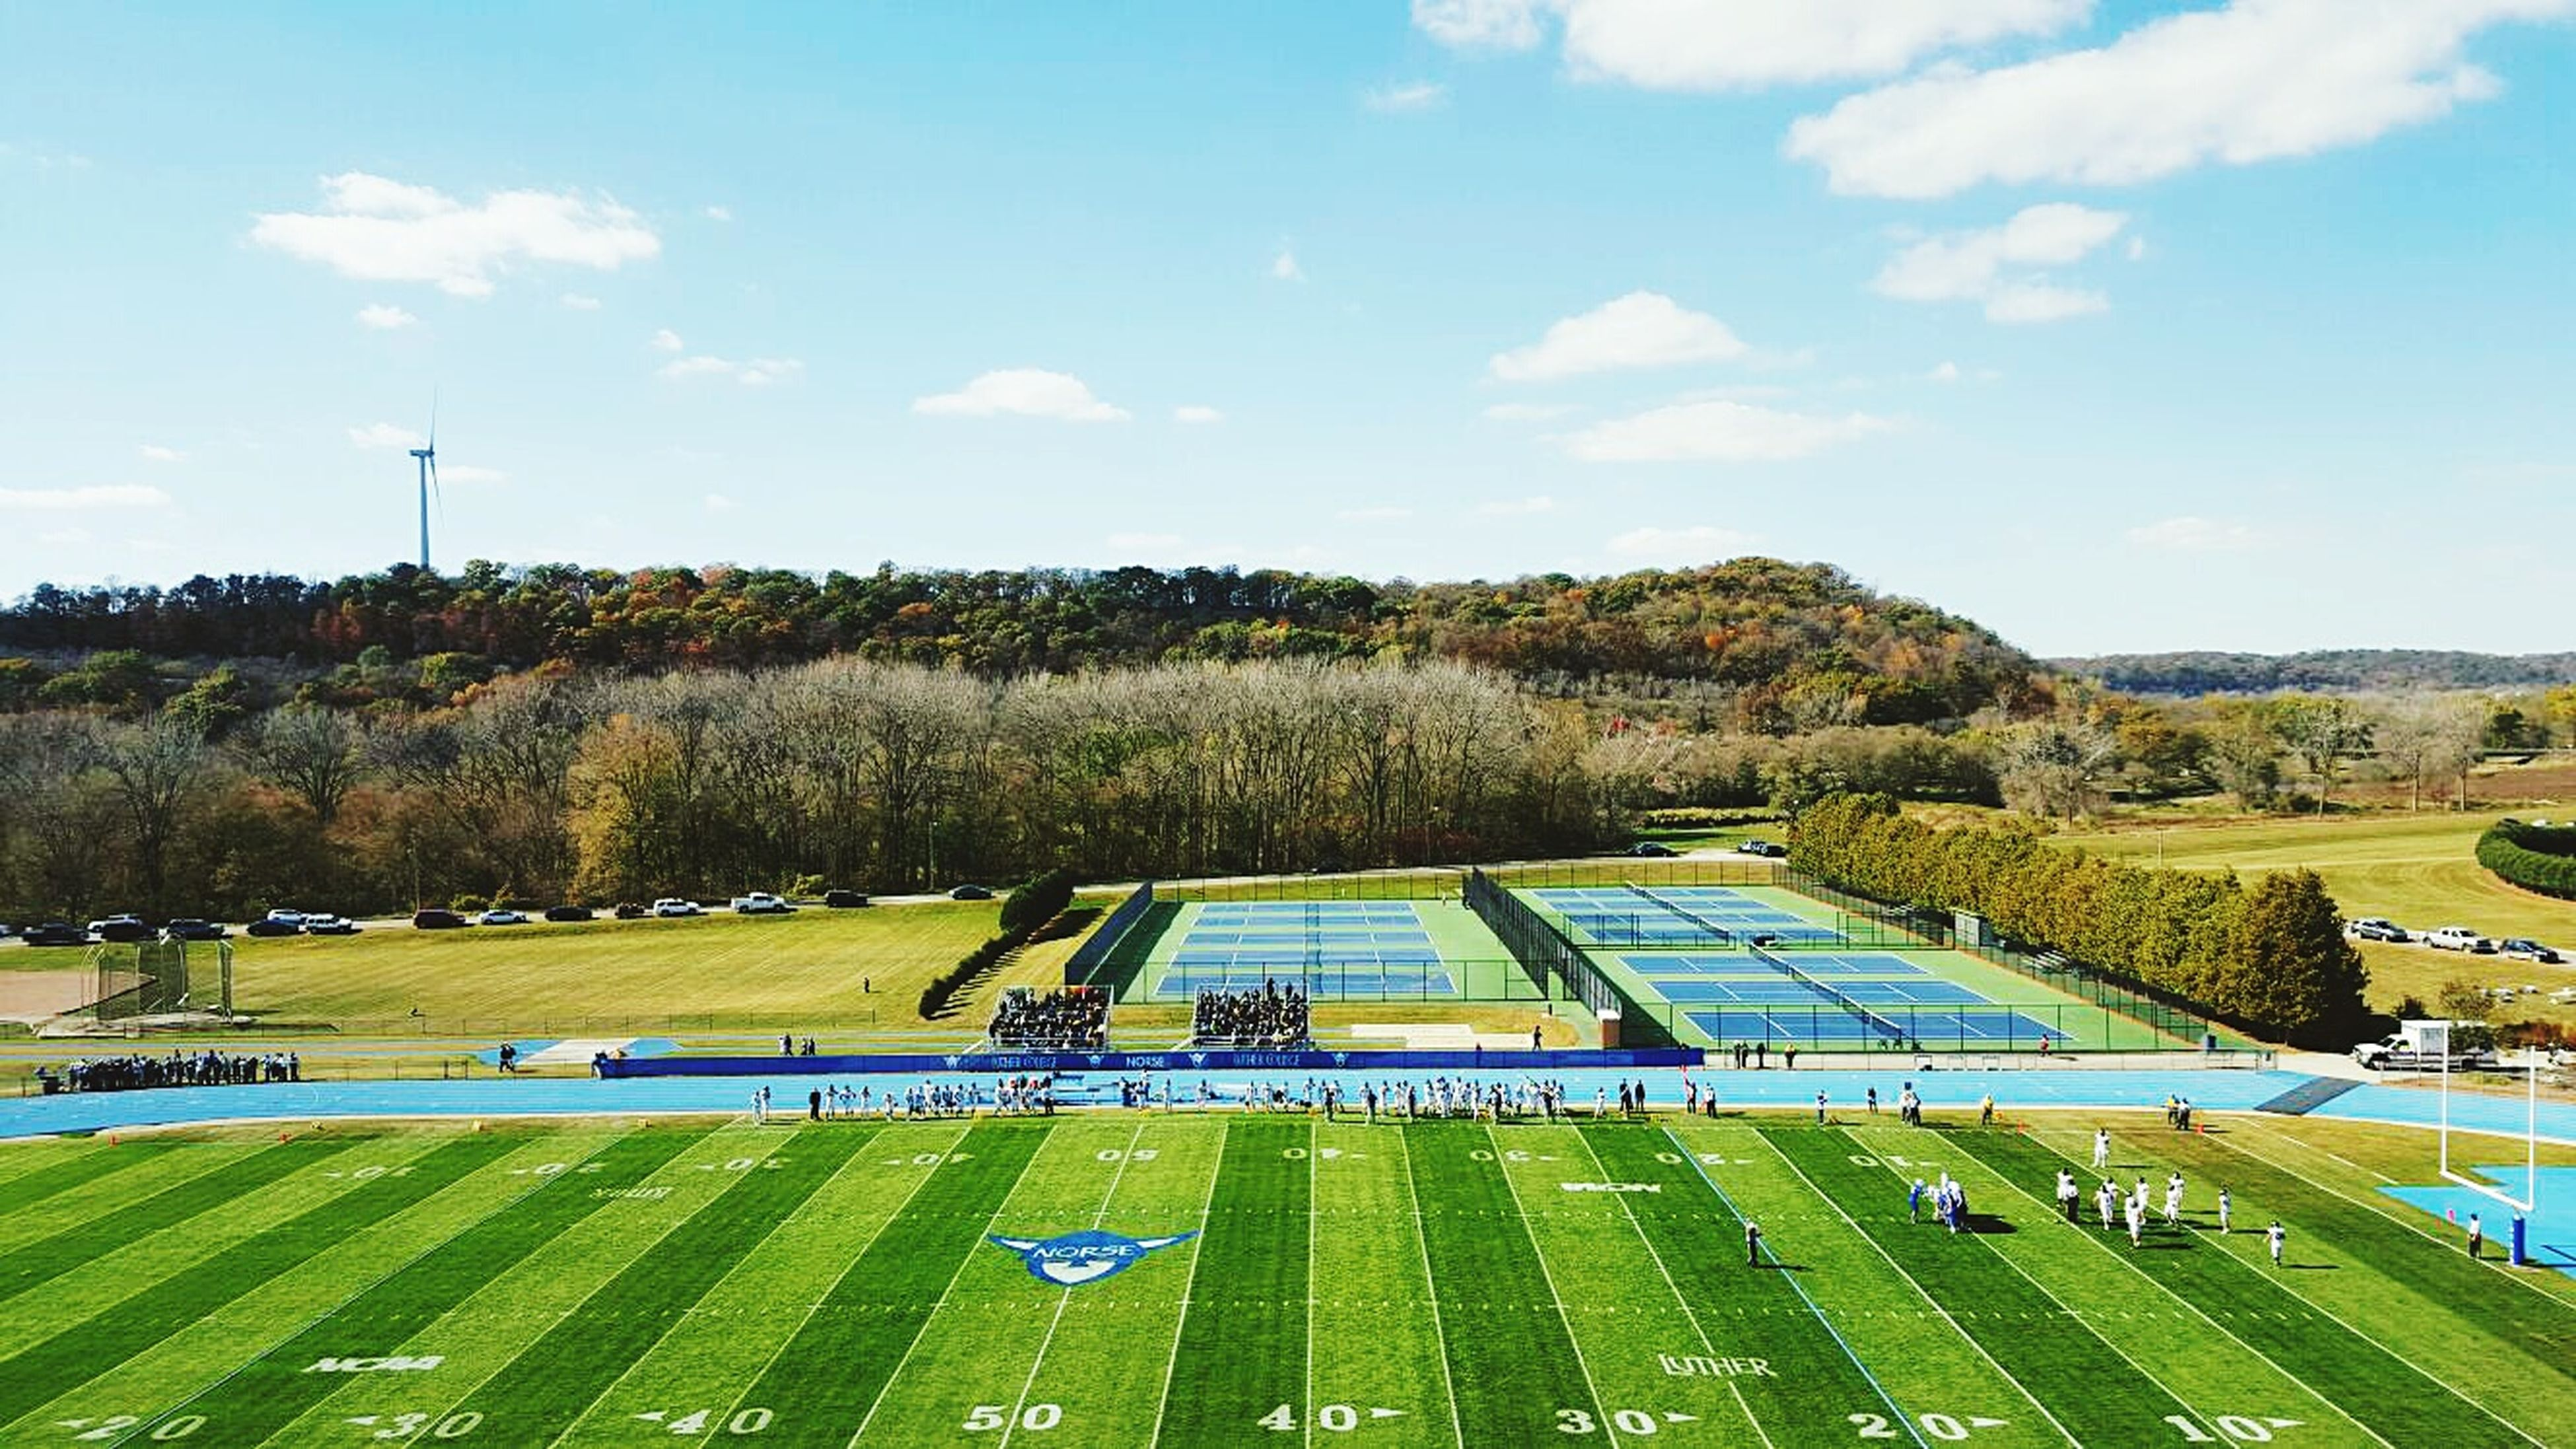 2015 Luther College Homecoming Itpaystobeanalumni Norse LUTHERCOLLEGE